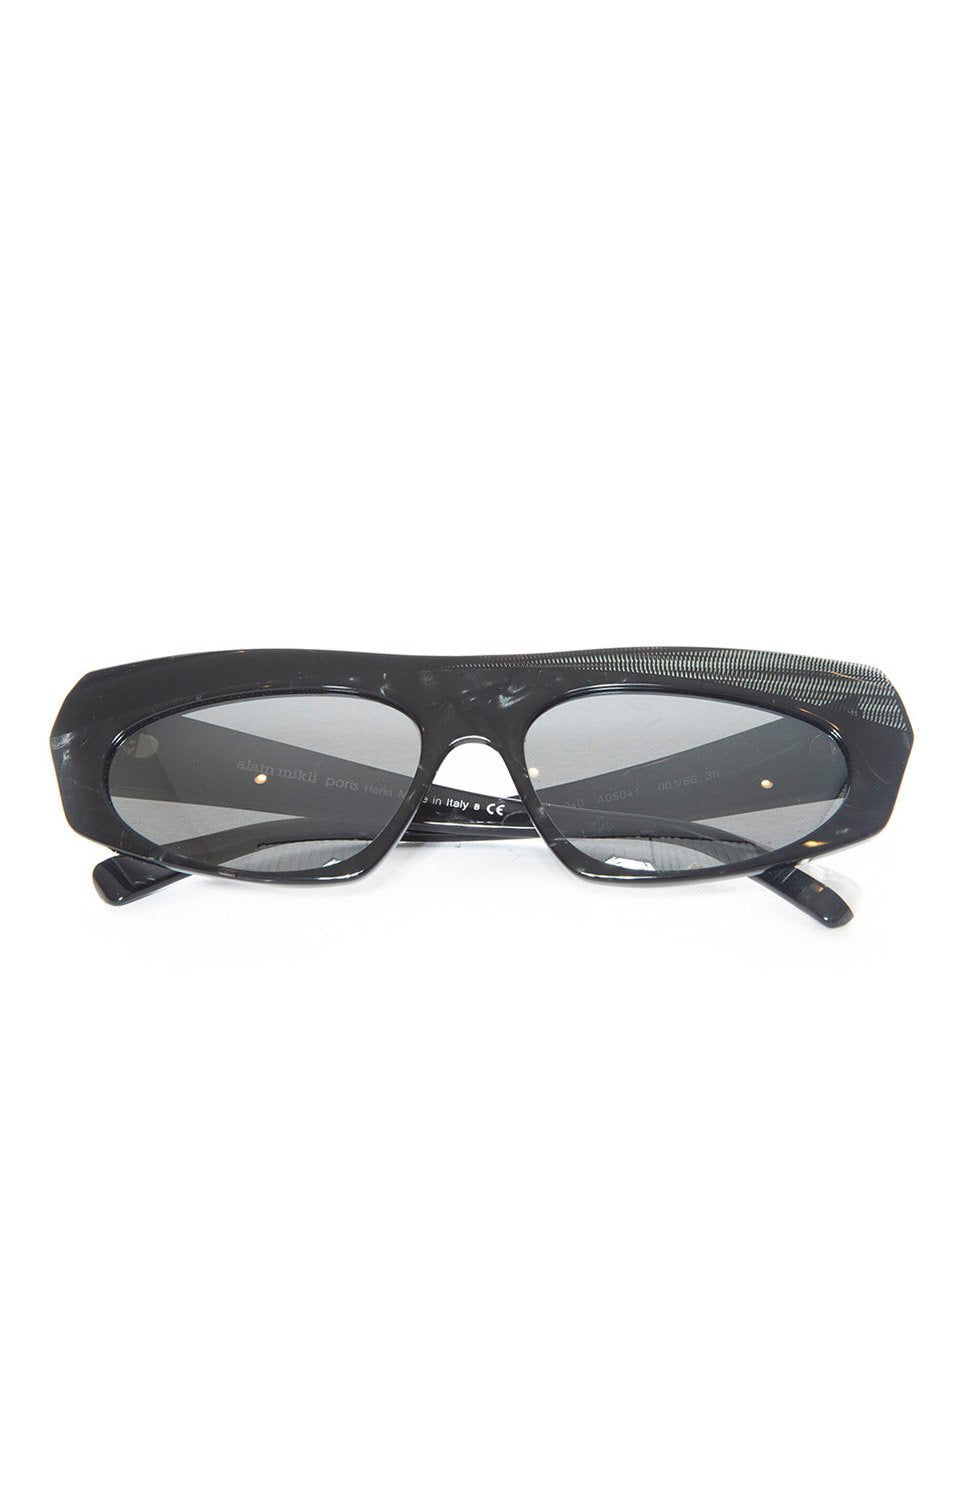 "Front view of ALAIN MIKLI Sunglasses Size: 1.75"" H x 6"" W"